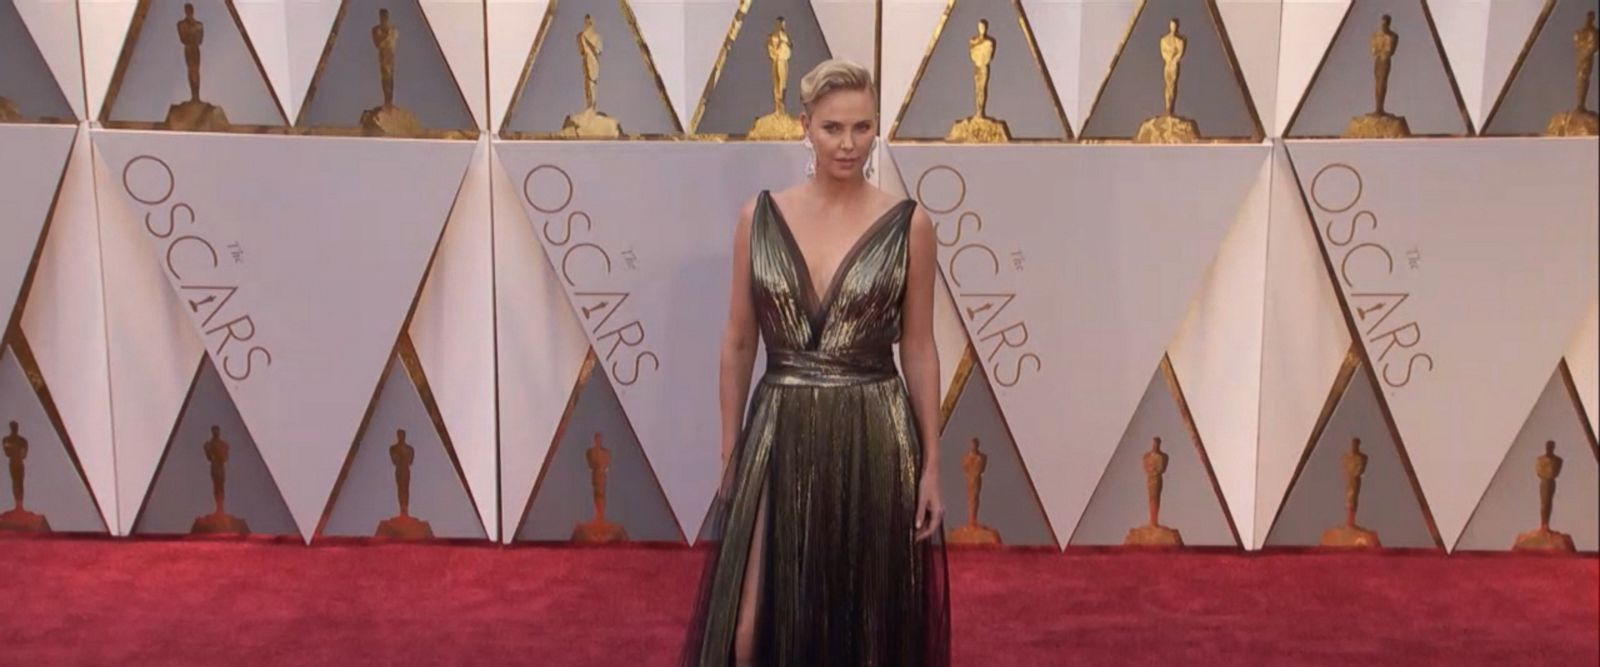 See the celebrities walk the red carpet at the 89th annual Academy Awards.